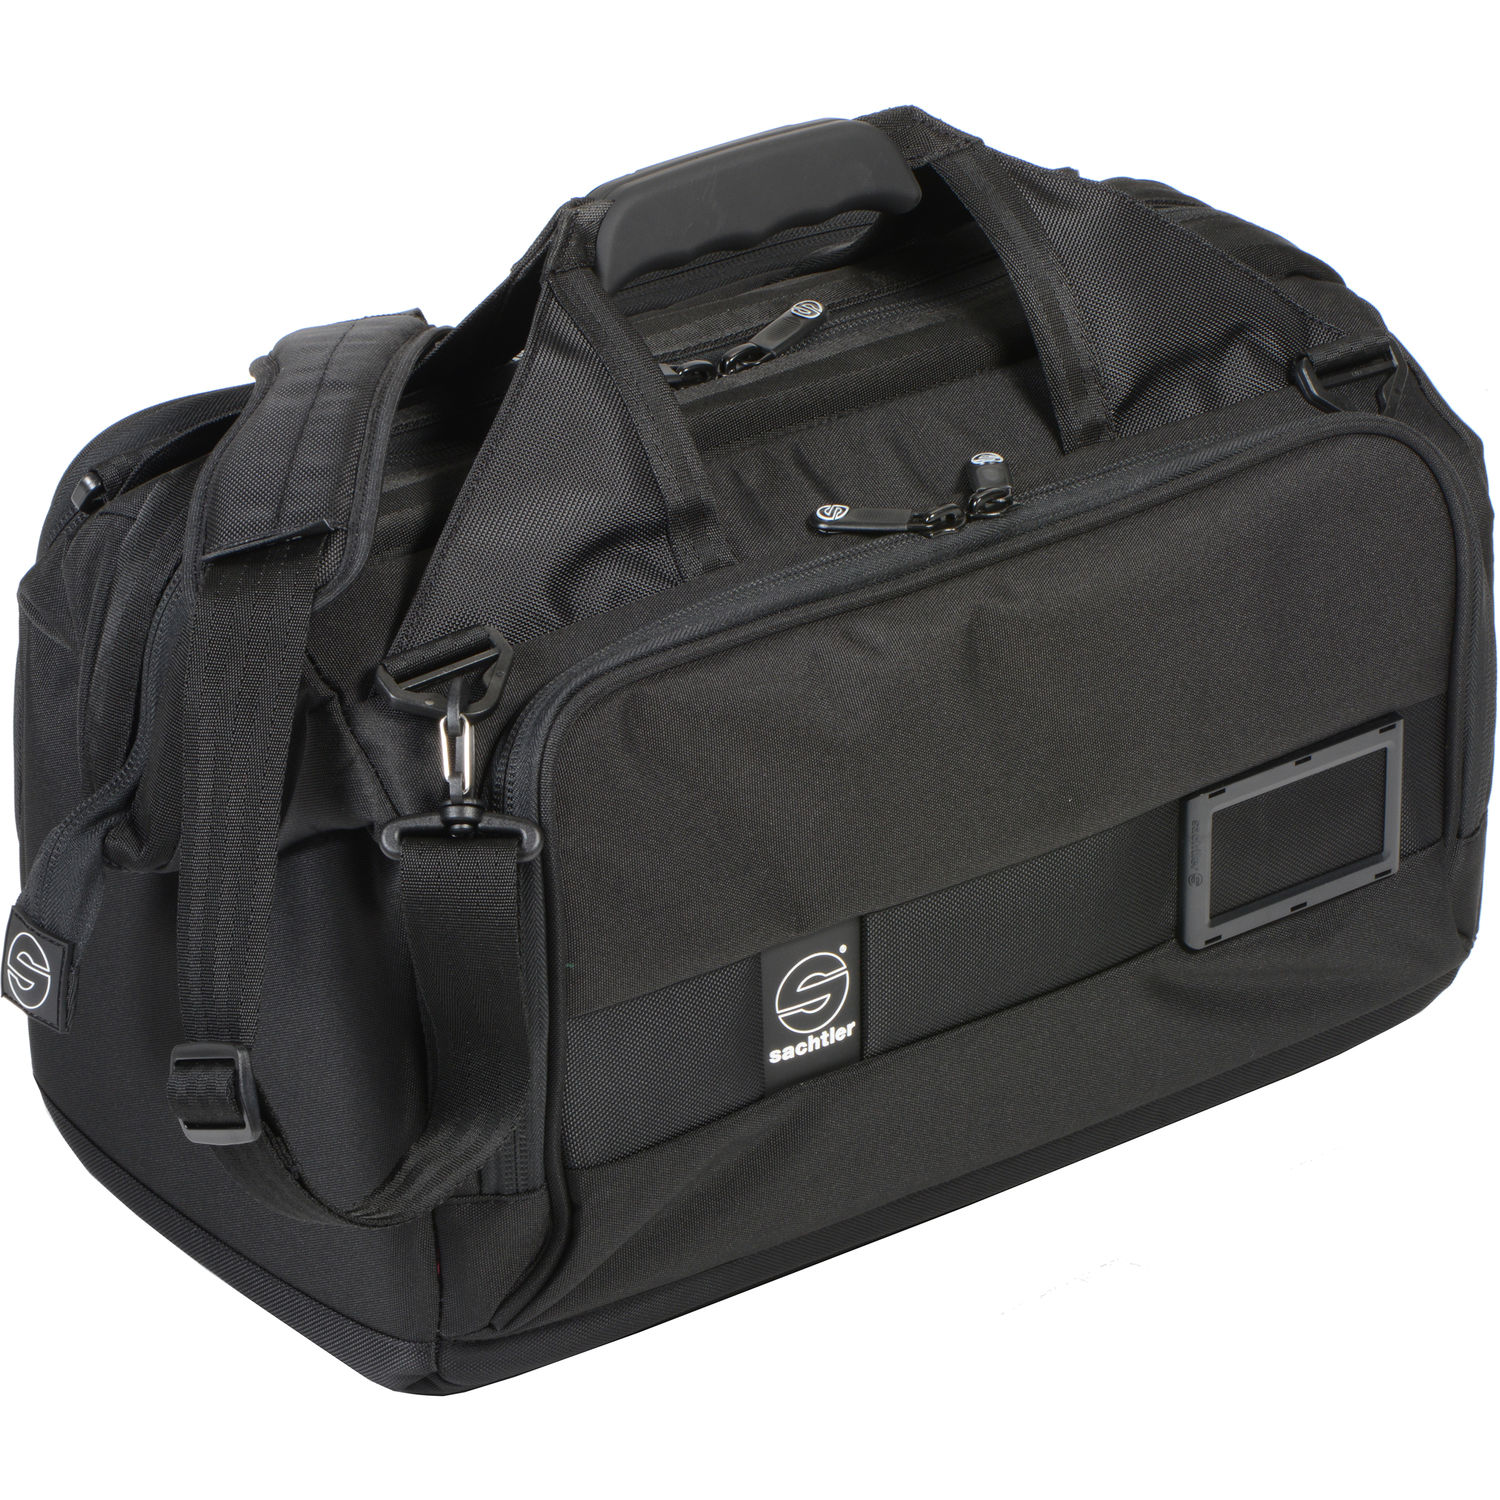 Sachtler SC003 Dr. Bag - 3 Professional Video Bag